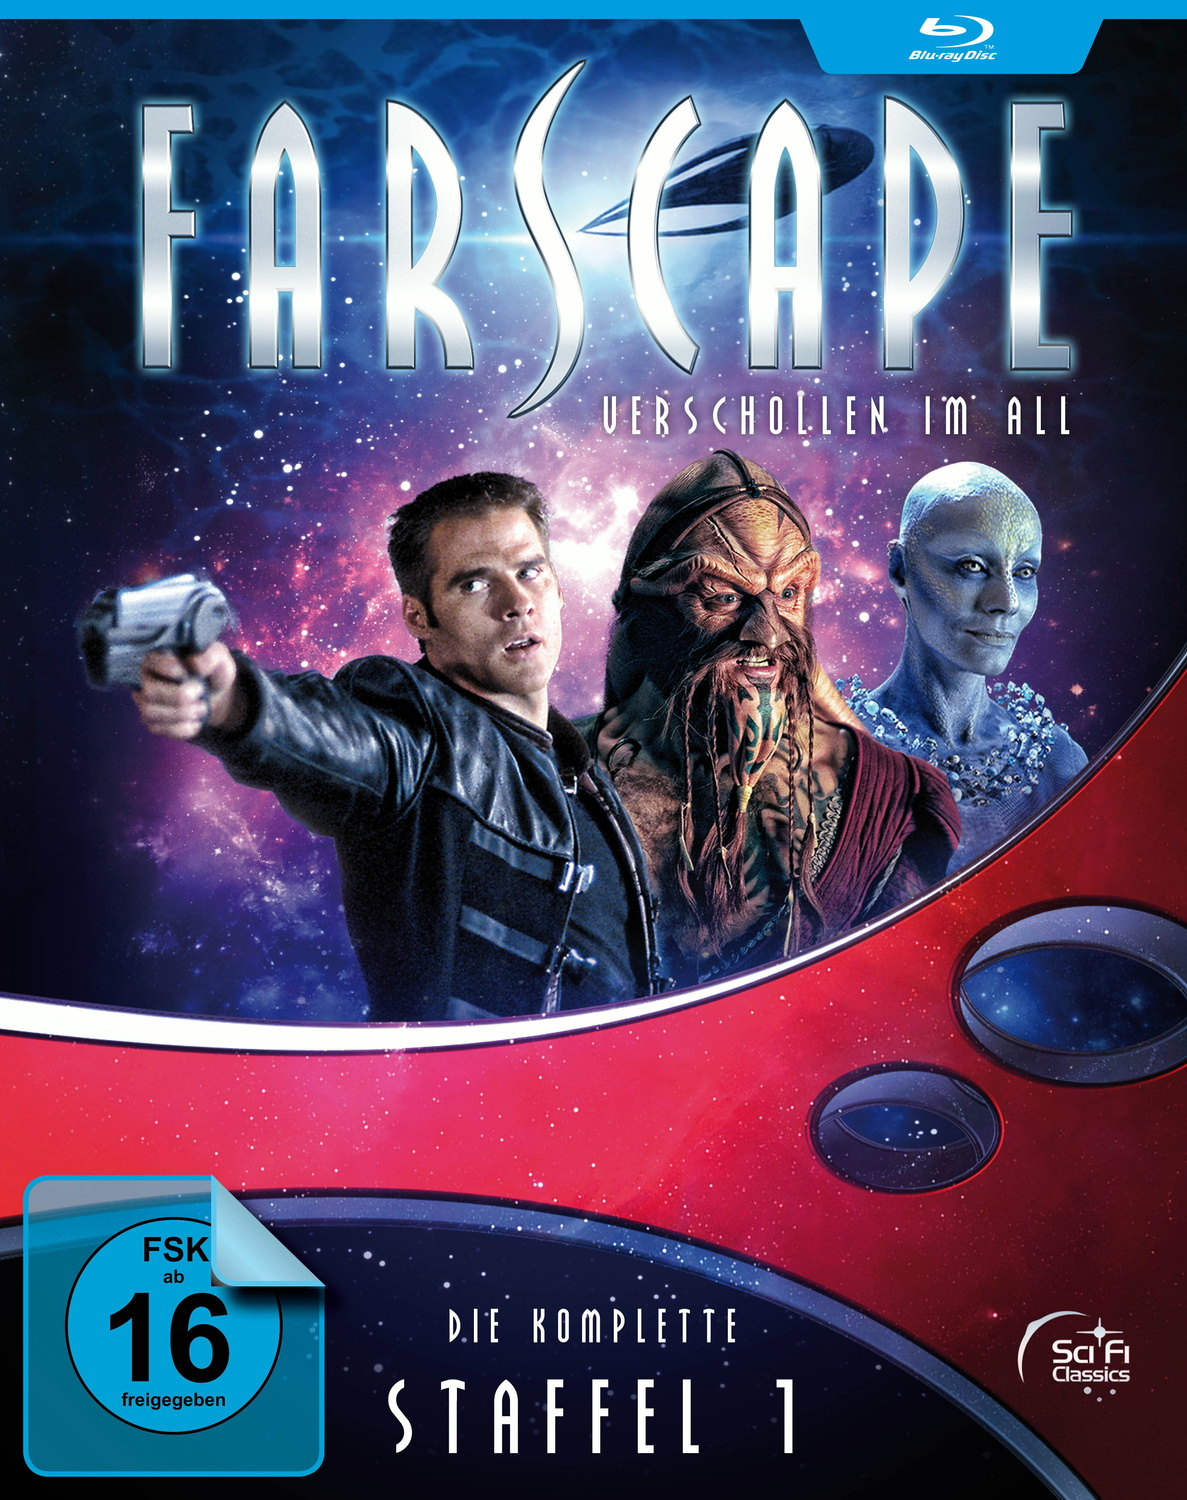 Farscape - Verschollen im All - Staffel 1